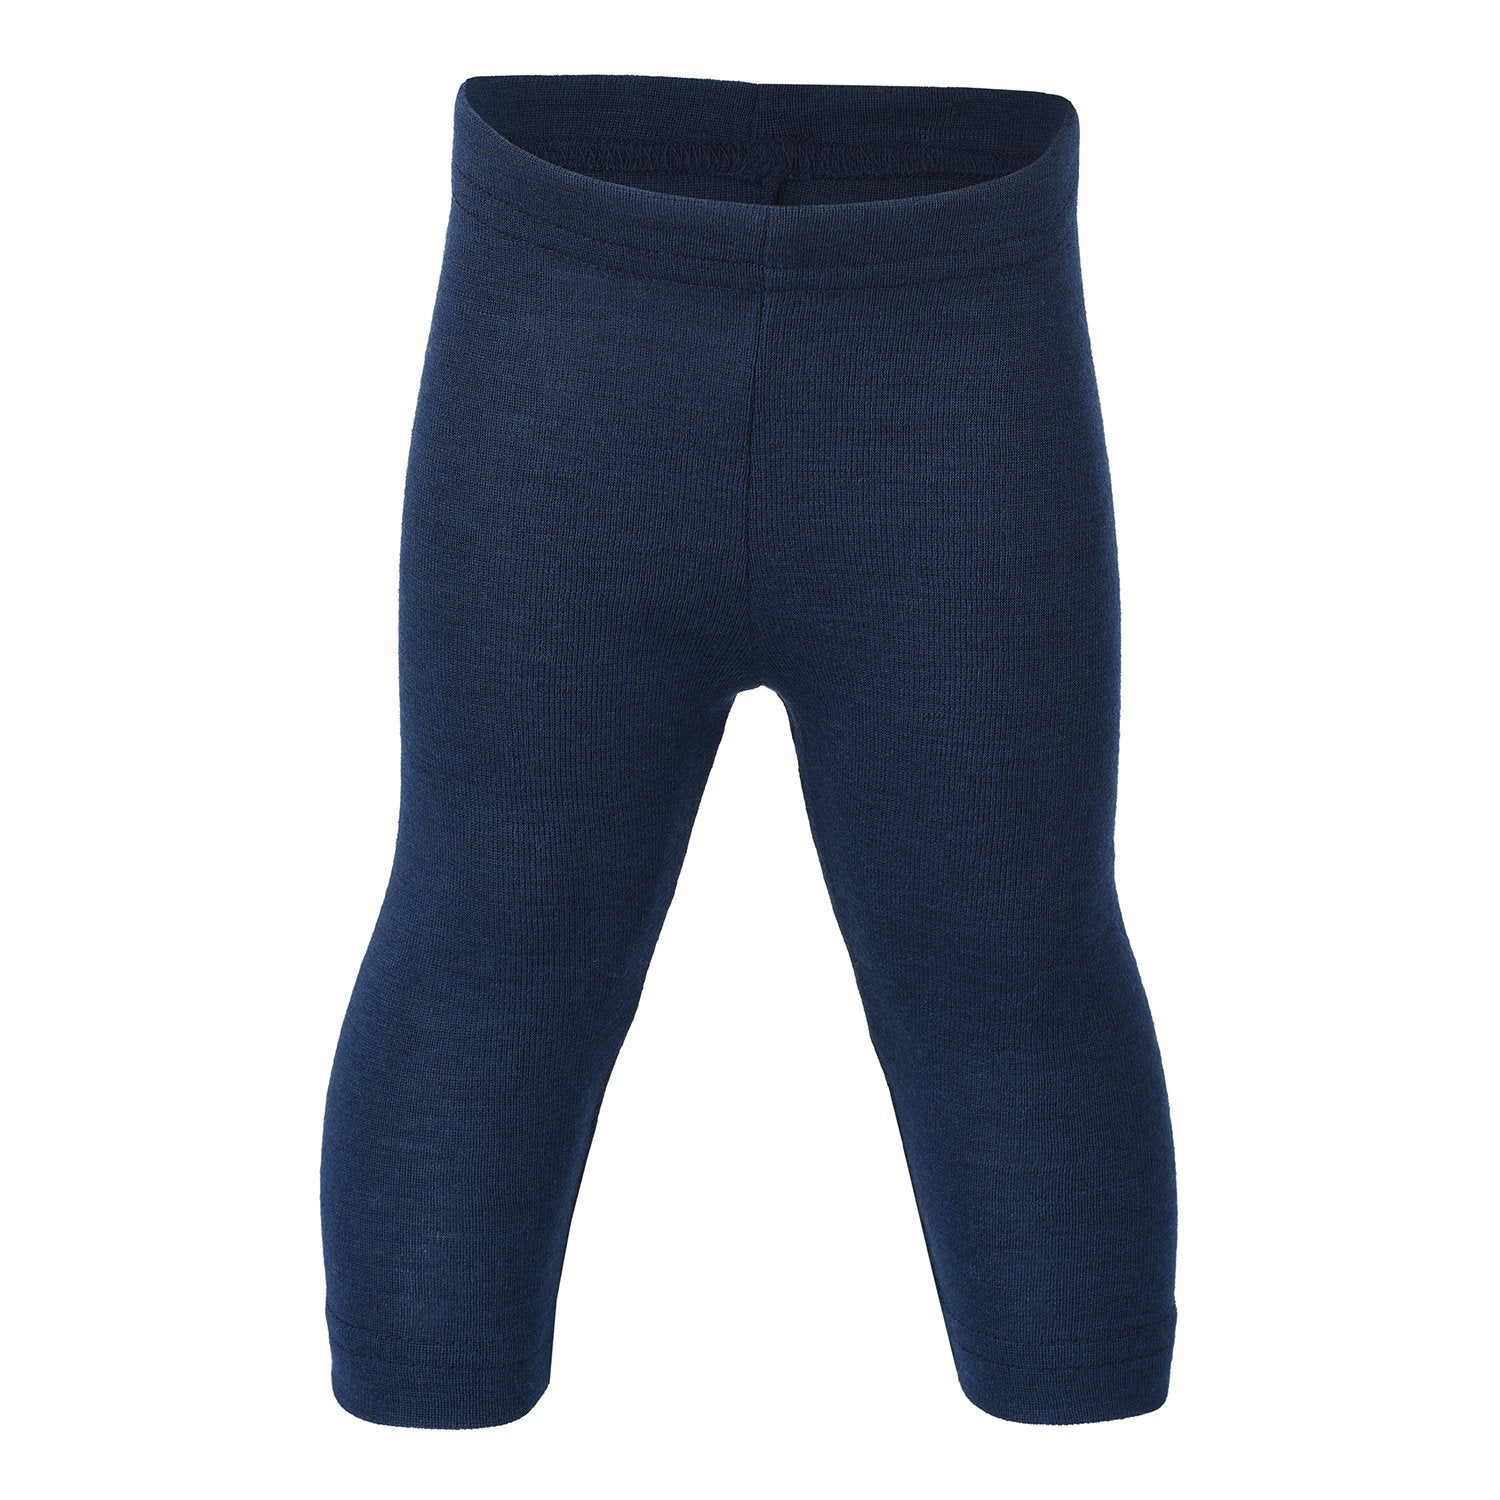 Image of   Engel bukser / leggings, uld/silke - Navy/blå